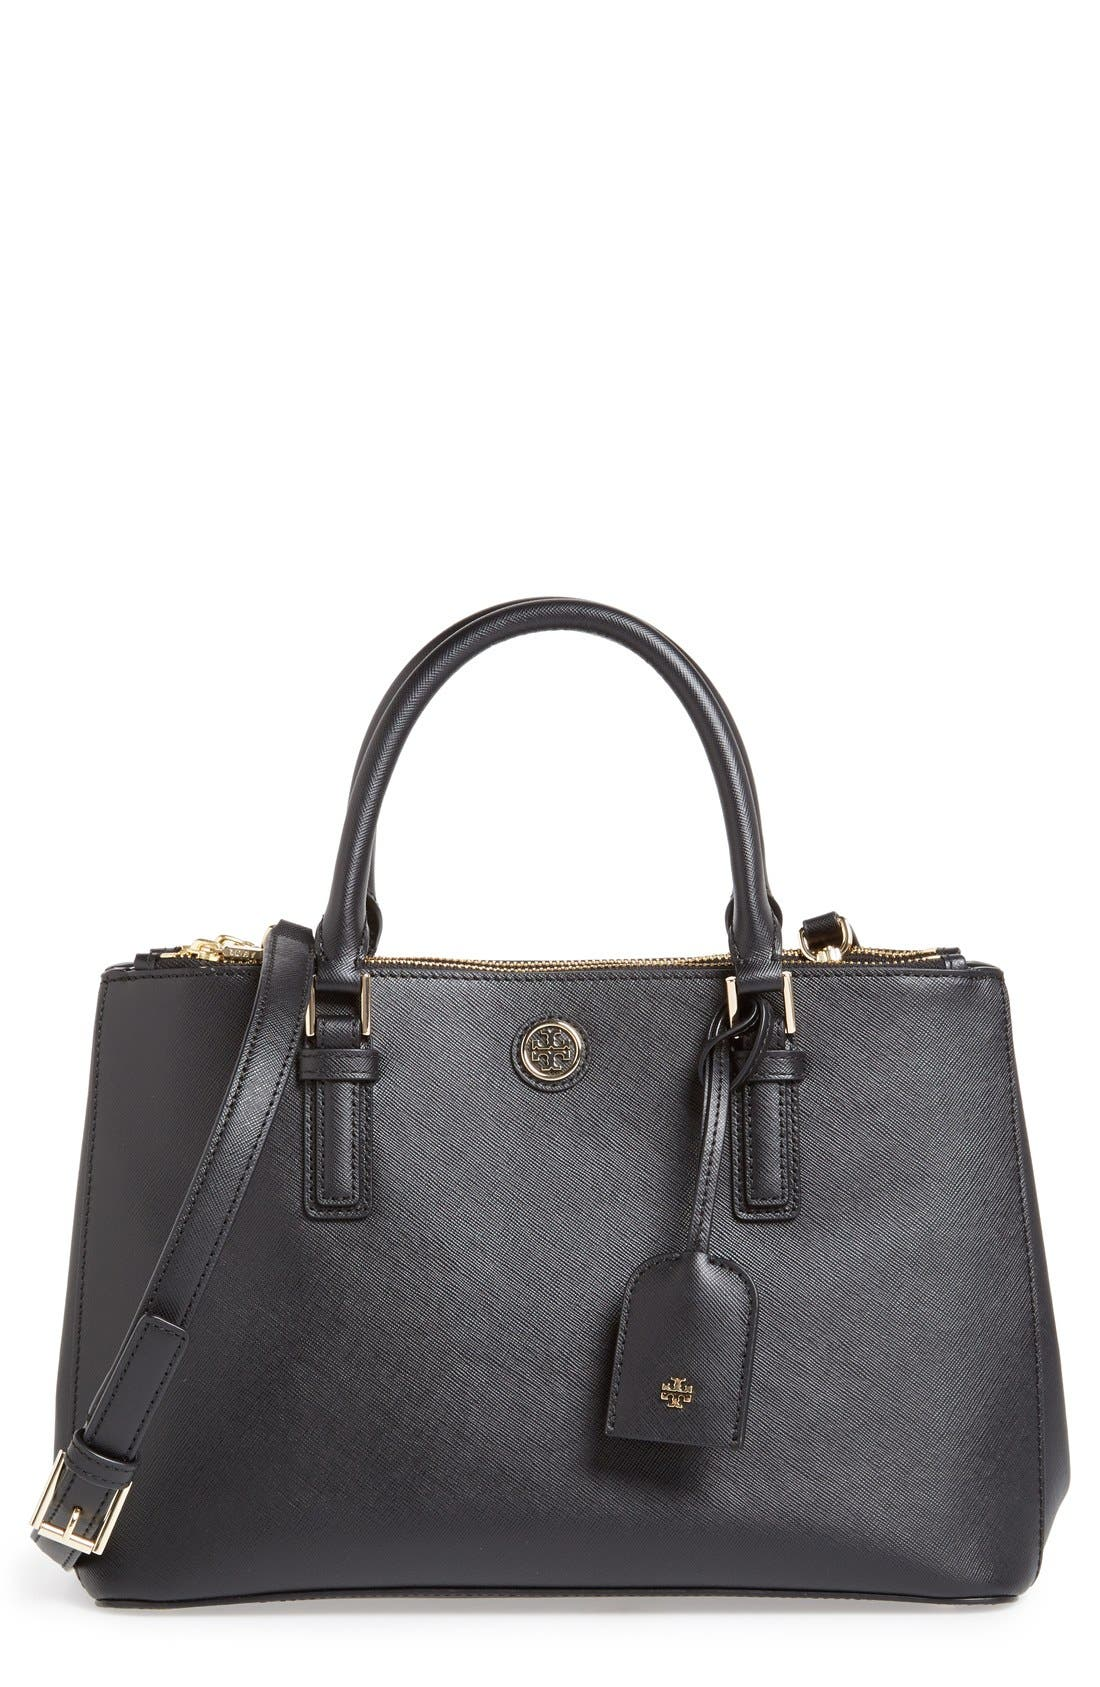 Main Image - Tory Burch 'Mini Robinson' Double Zip Tote